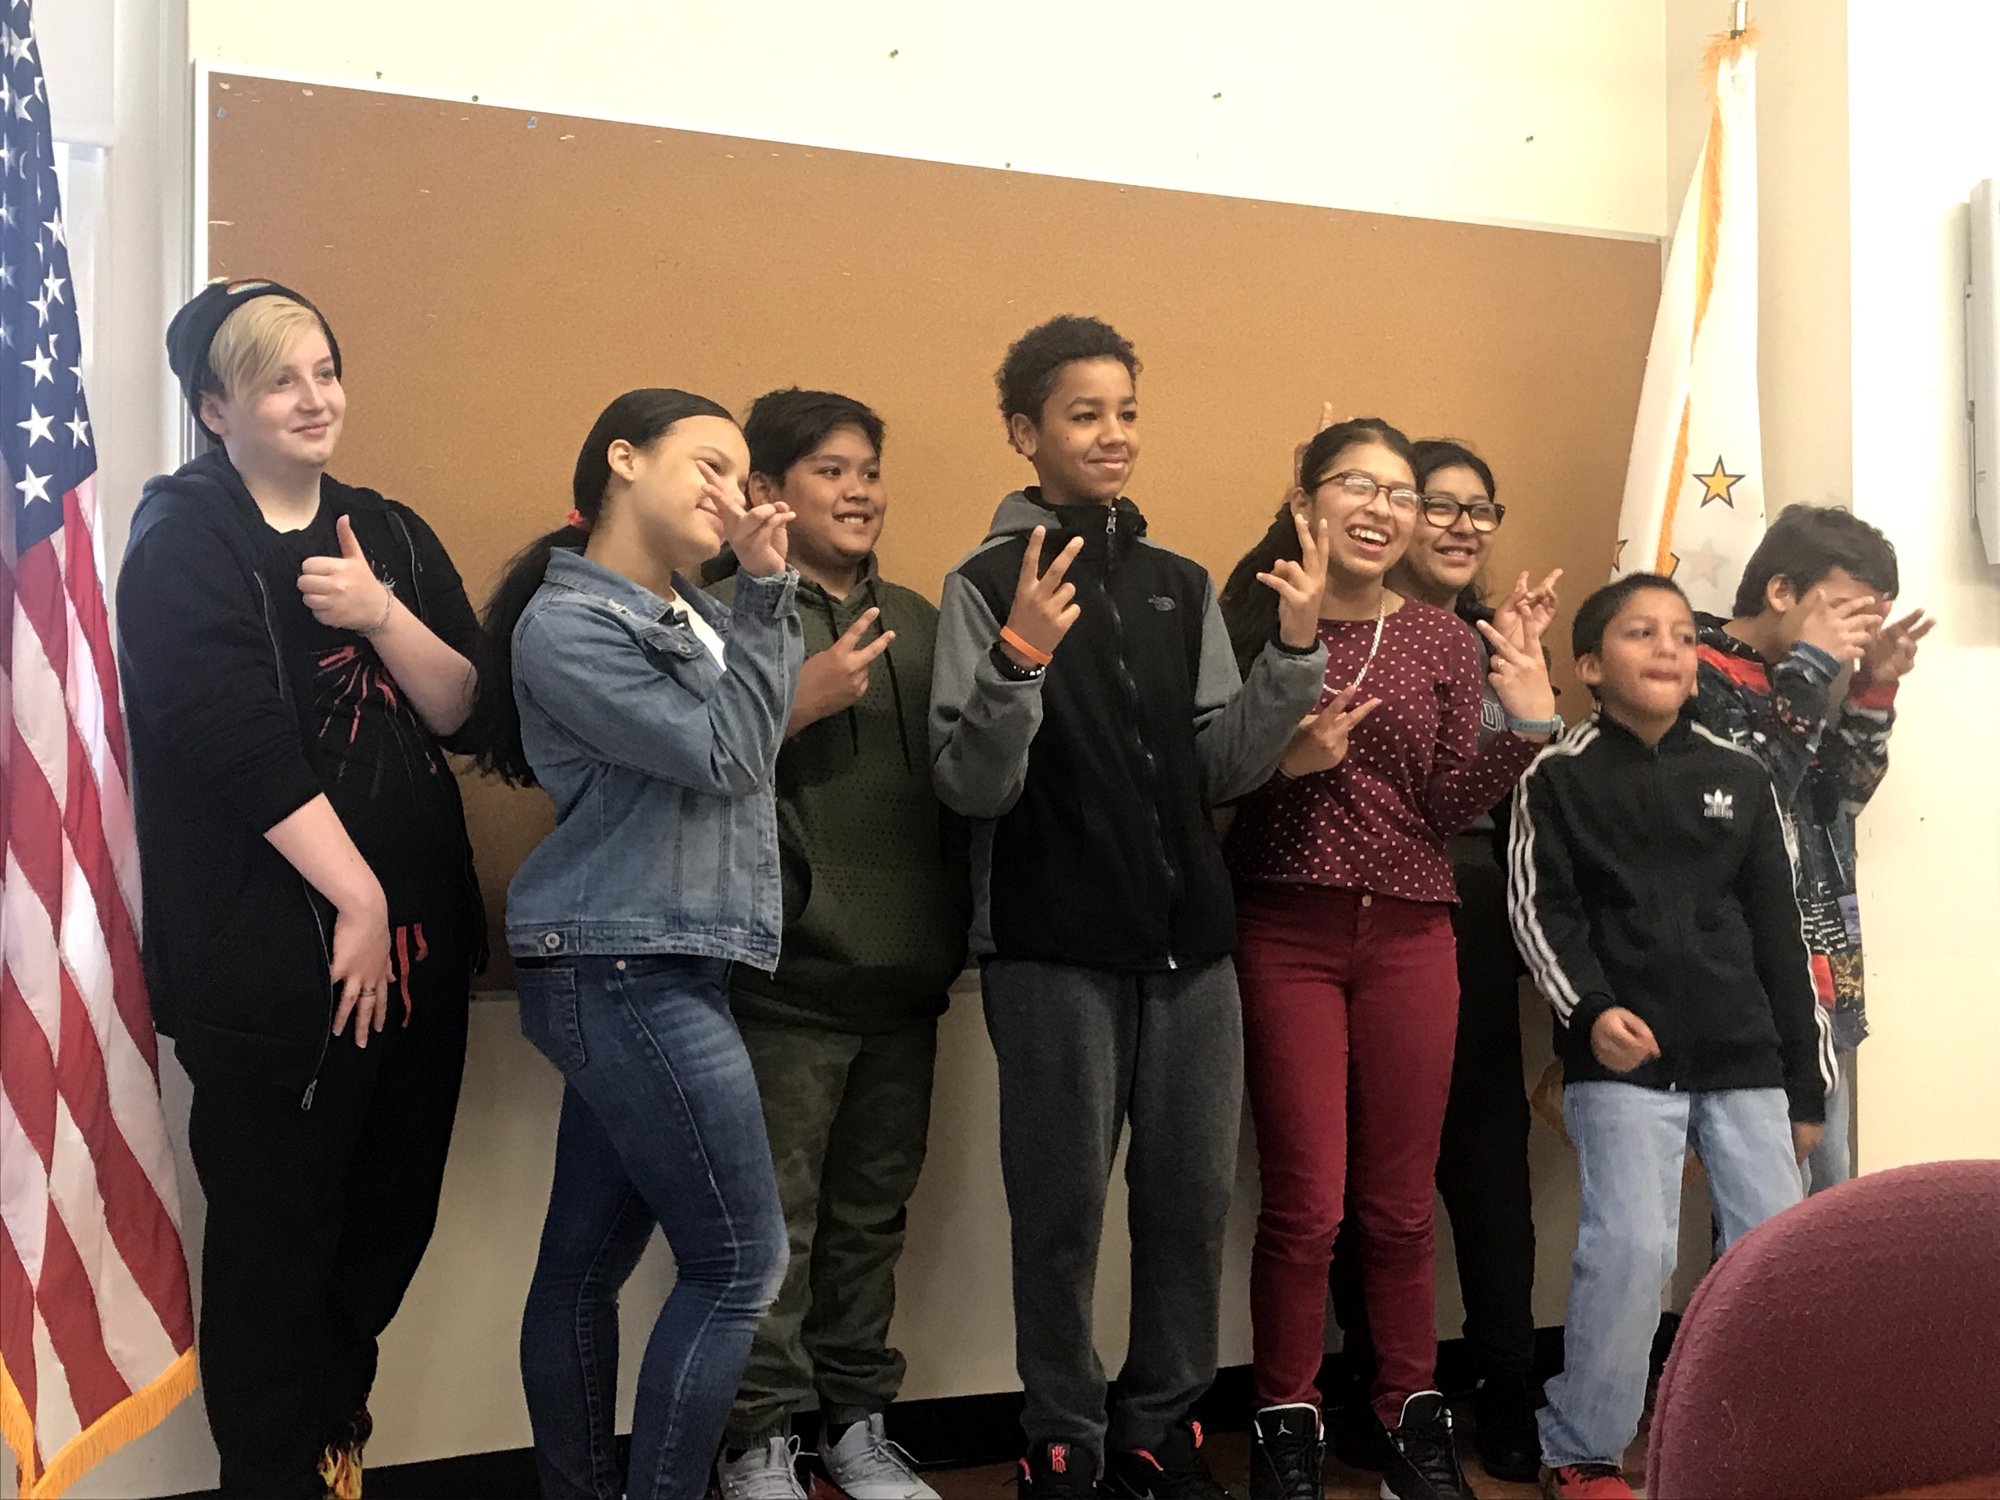 Some of the 15 newly elected members of West Broadway Middle School's first National Student Council